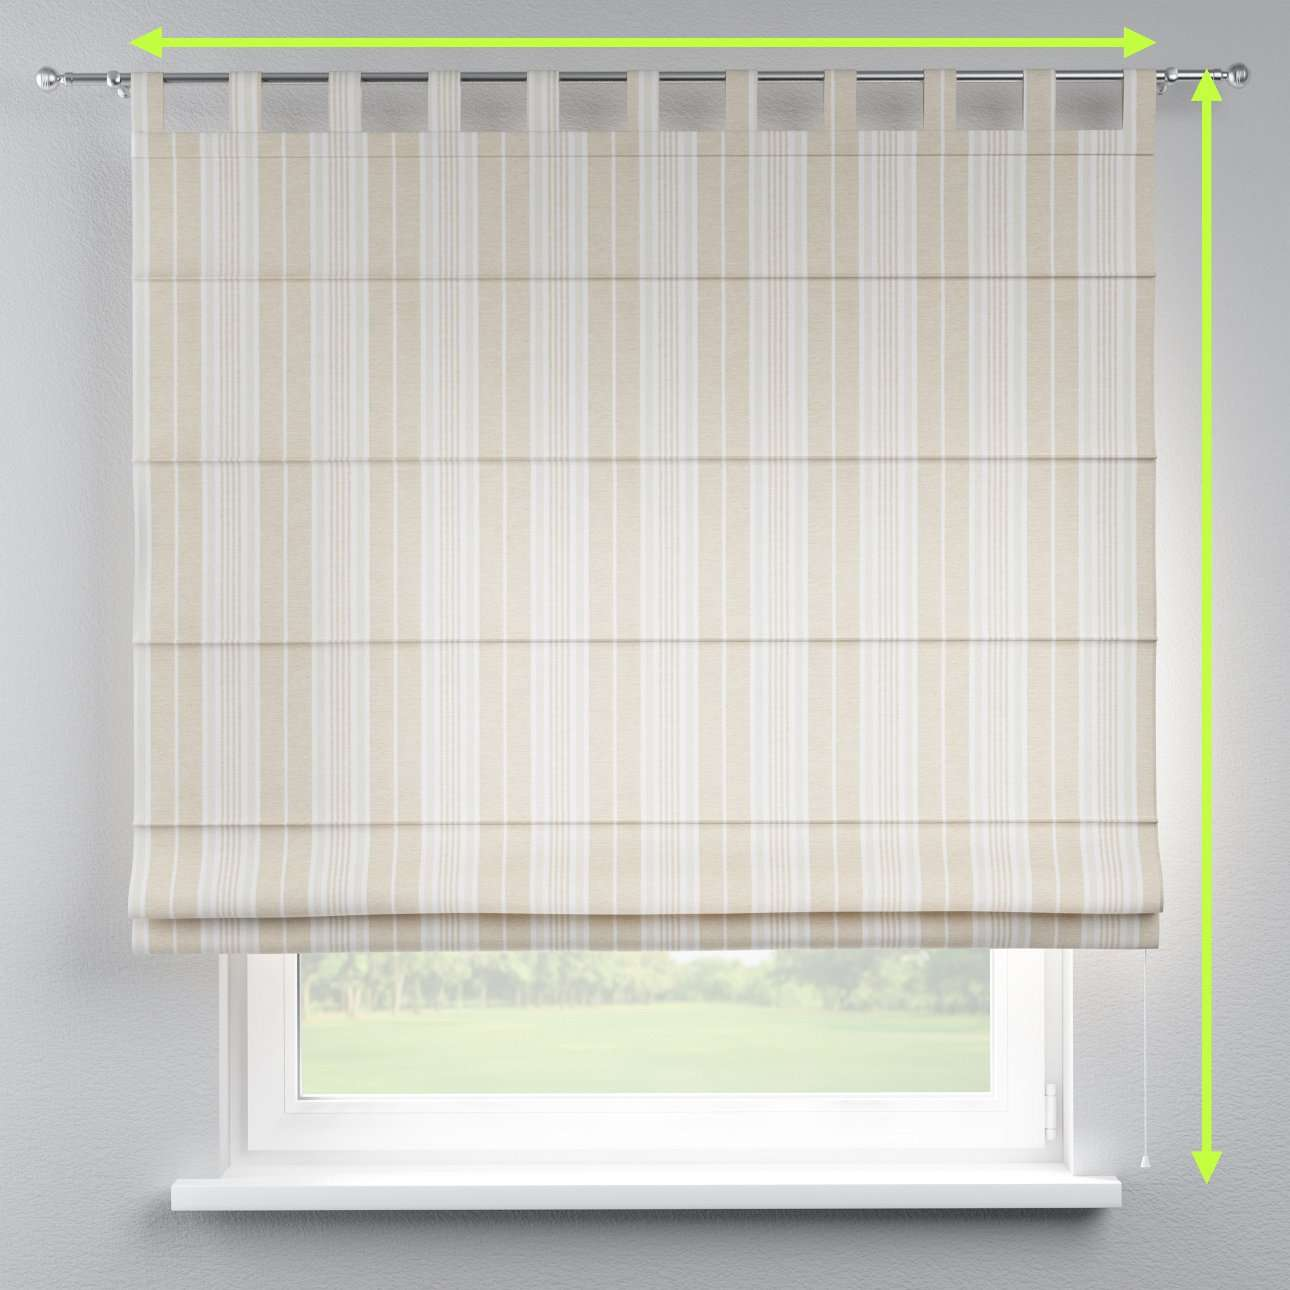 Verona tab top roman blind in collection Rustica, fabric: 138-24